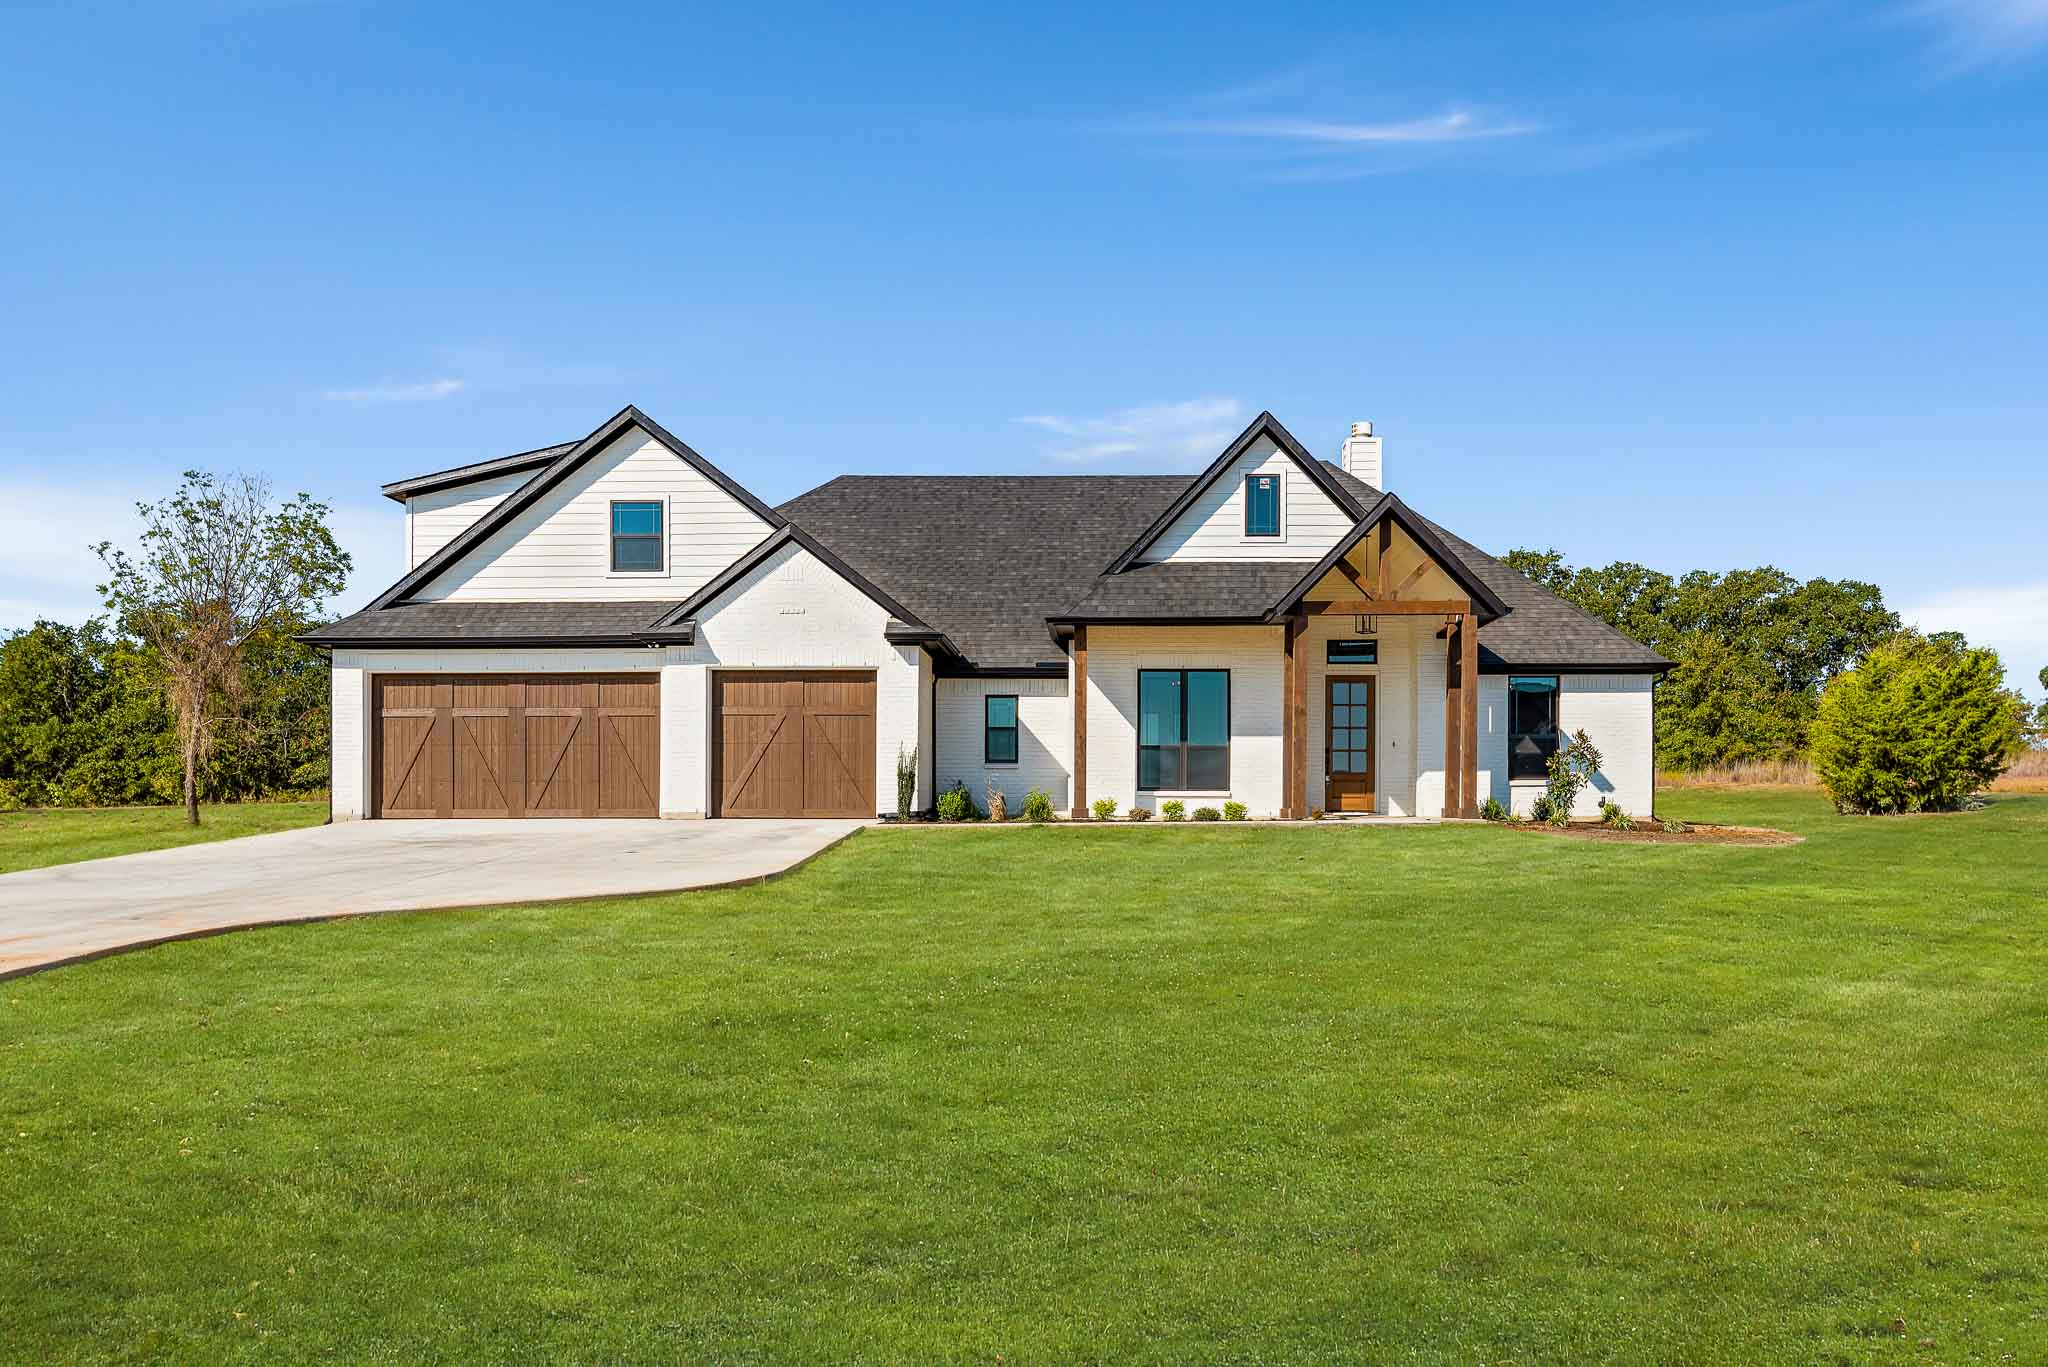 Farmstyle new construction home near Fort Worth for sale